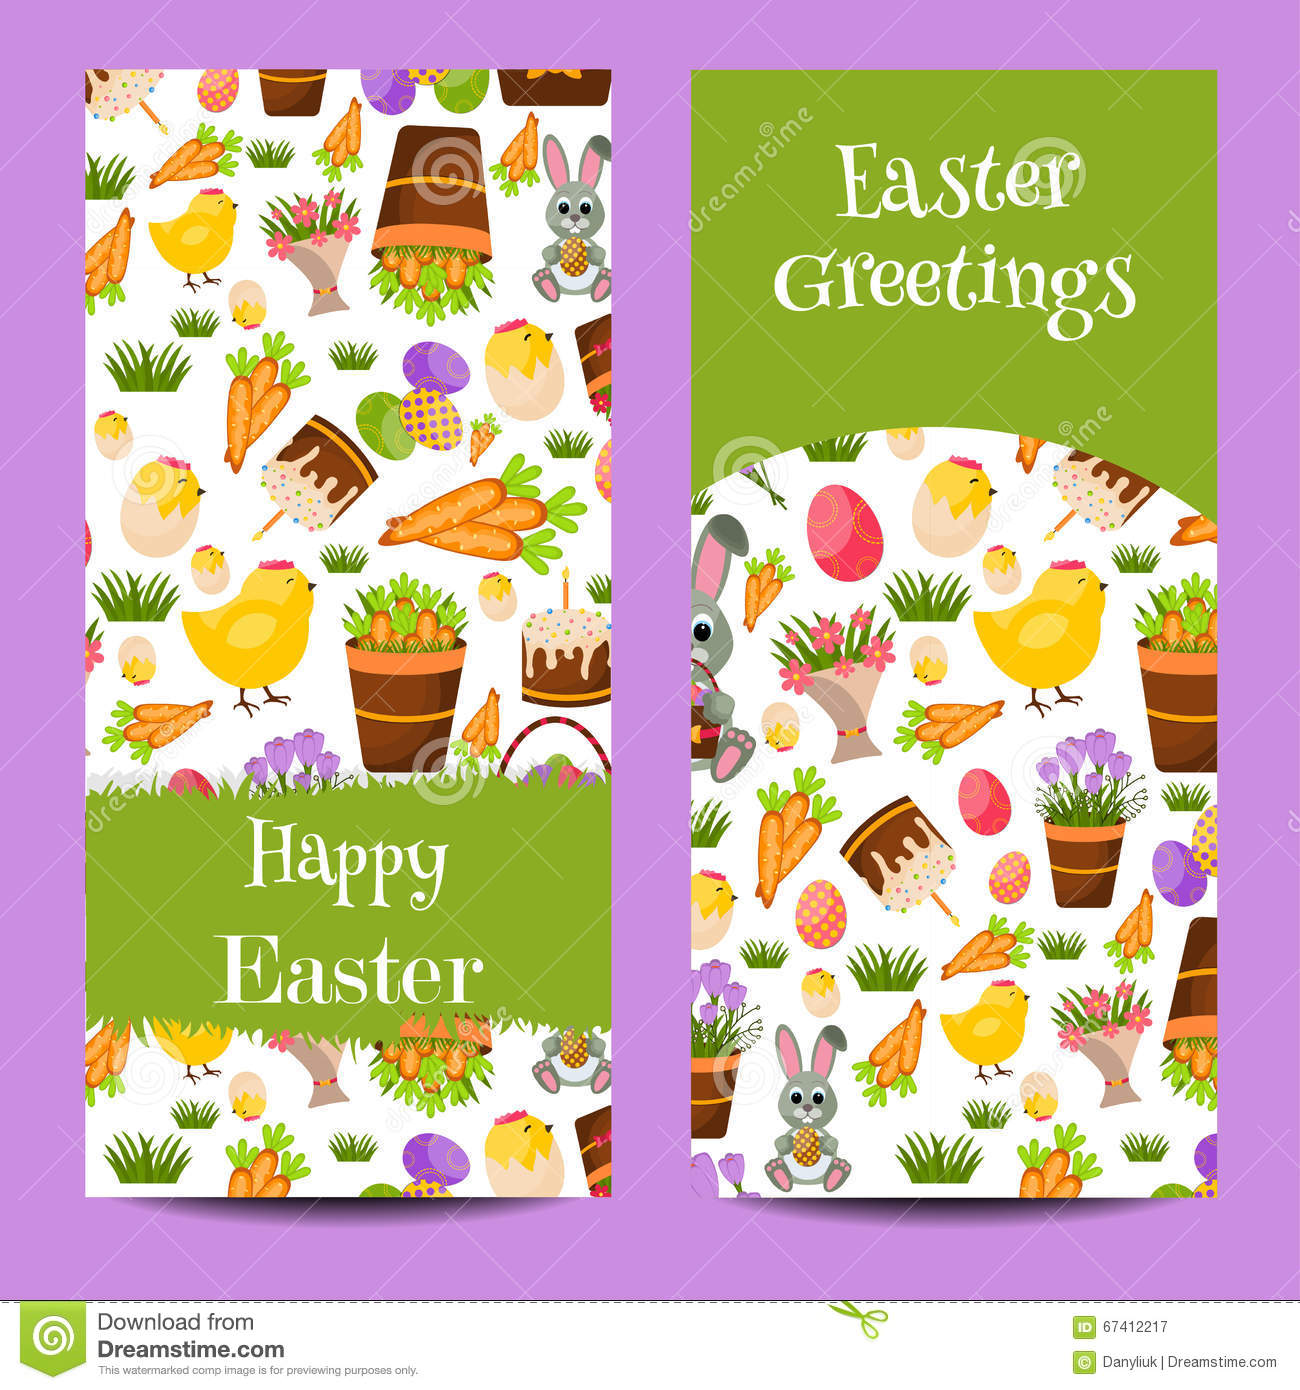 How is easter date set in Australia